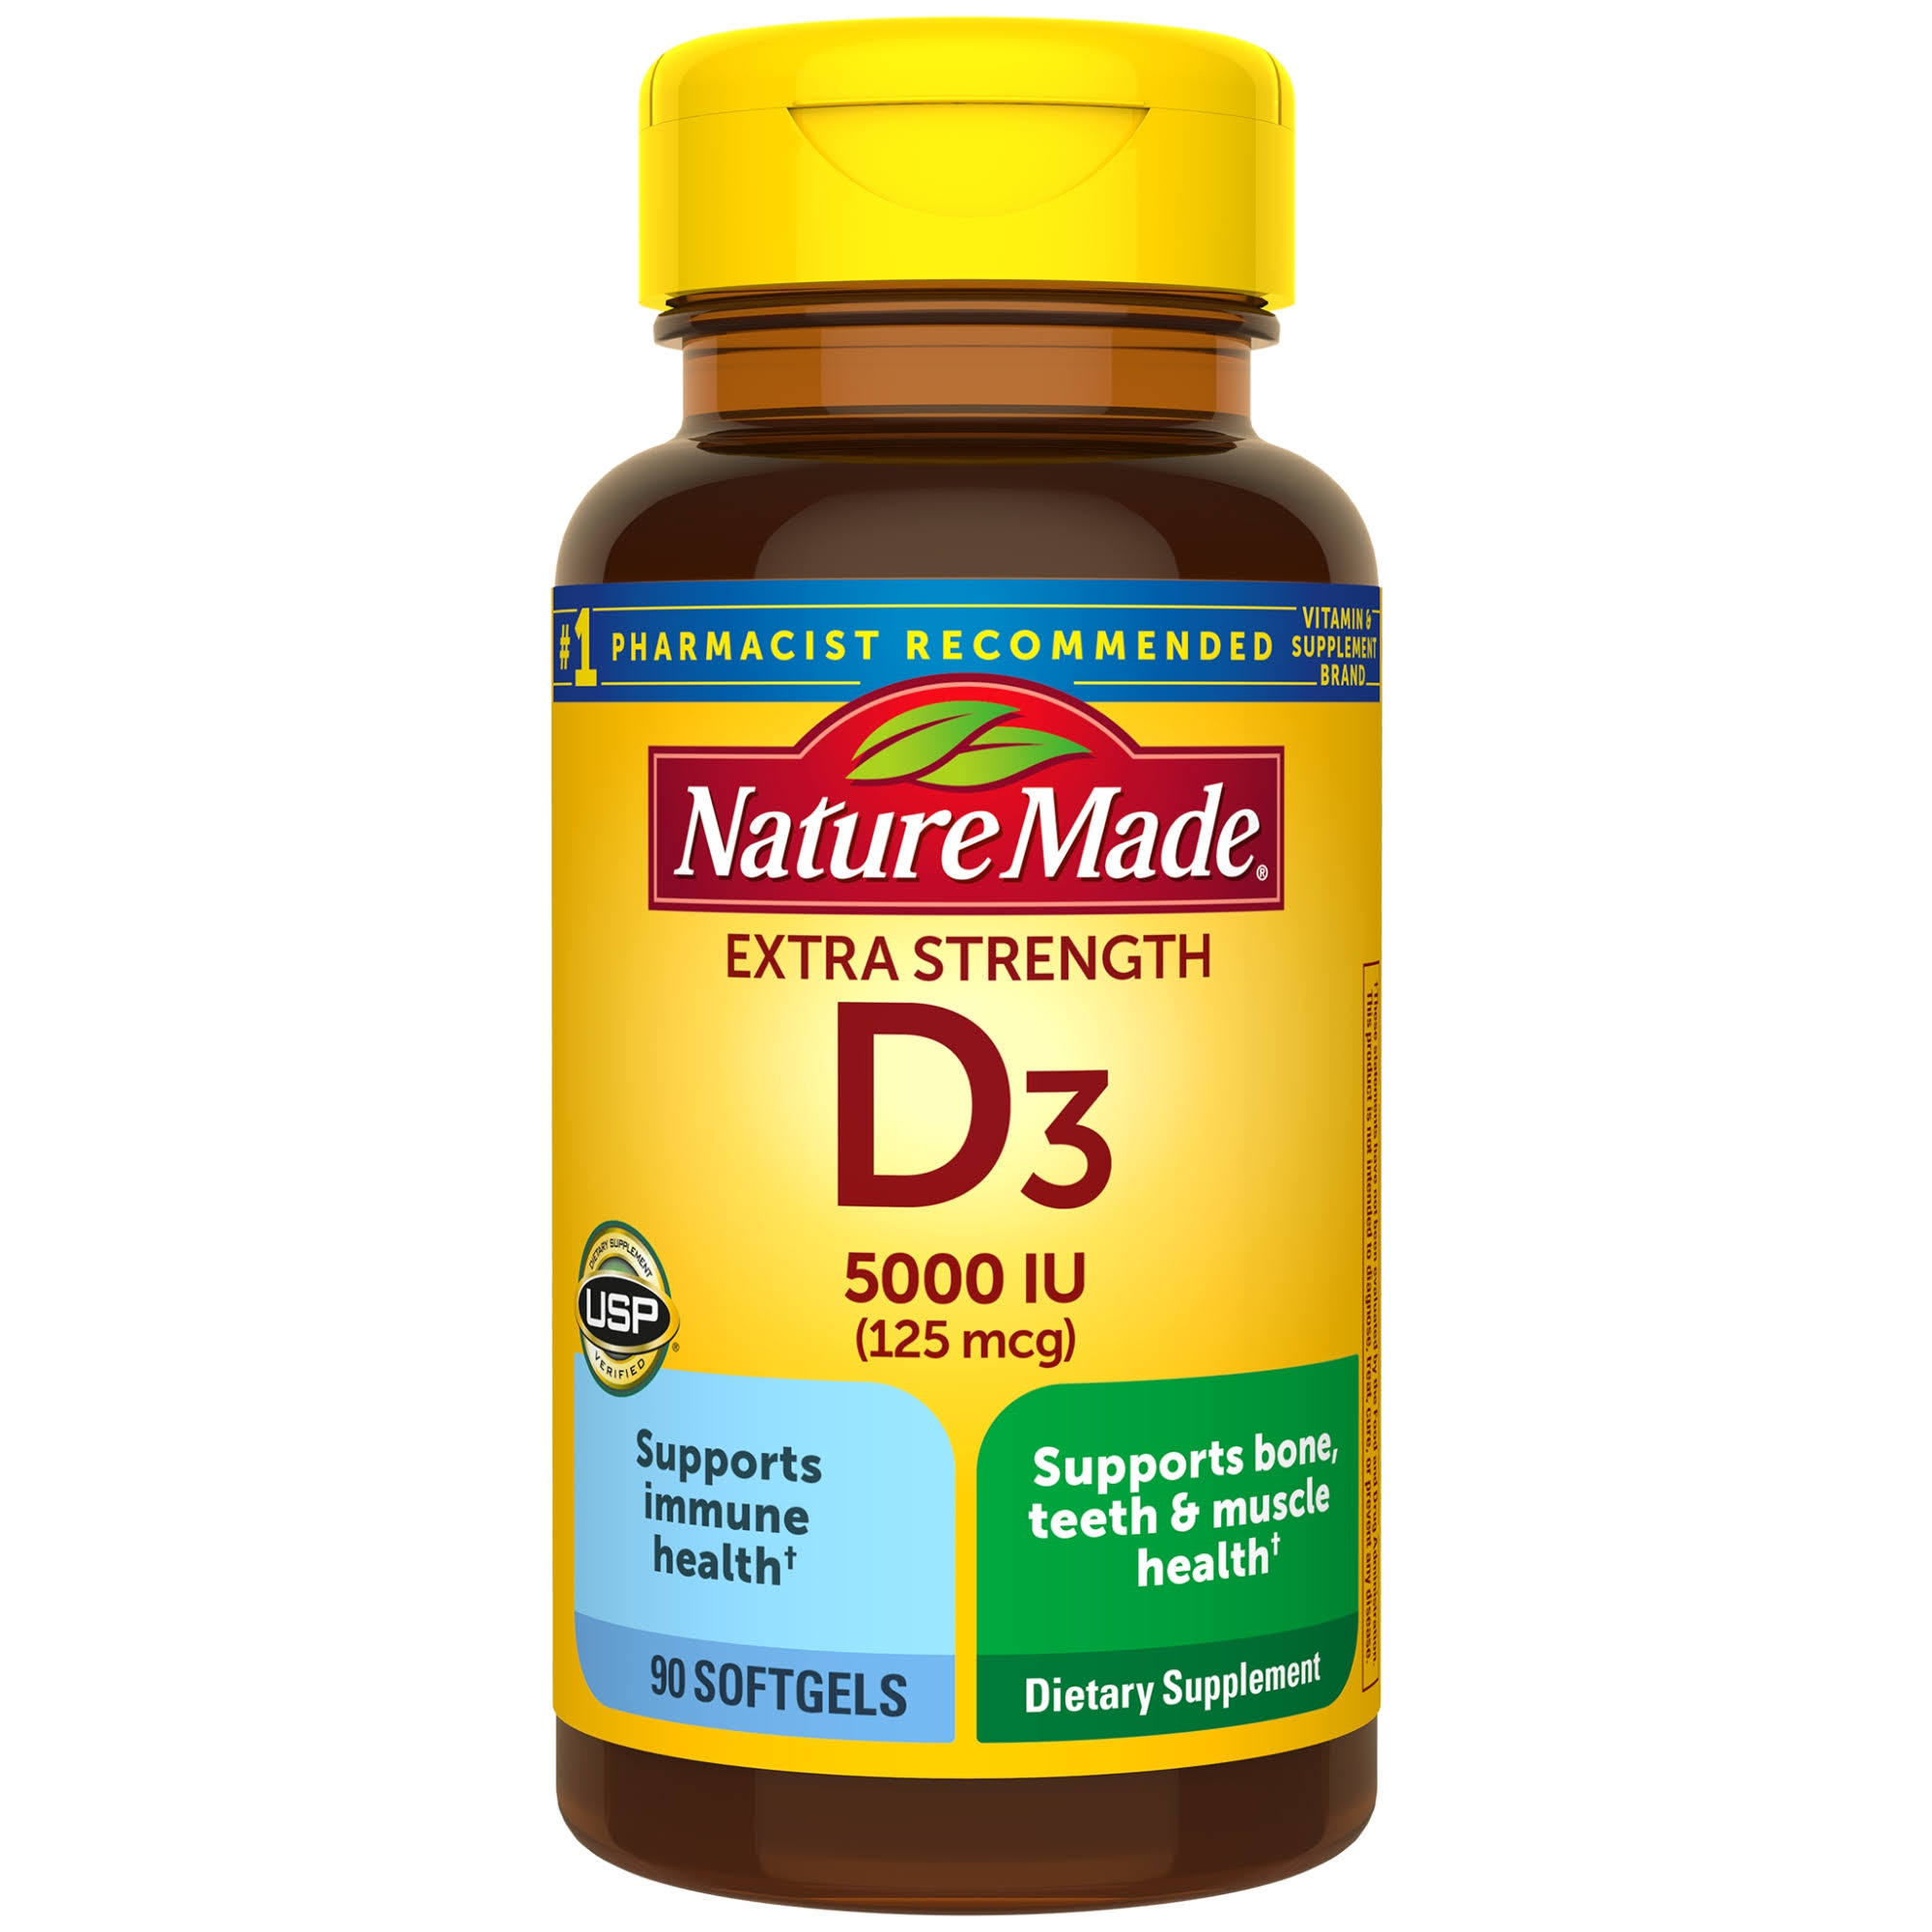 Nature Made Vitamin D3 Dietary Supplement - 90ct